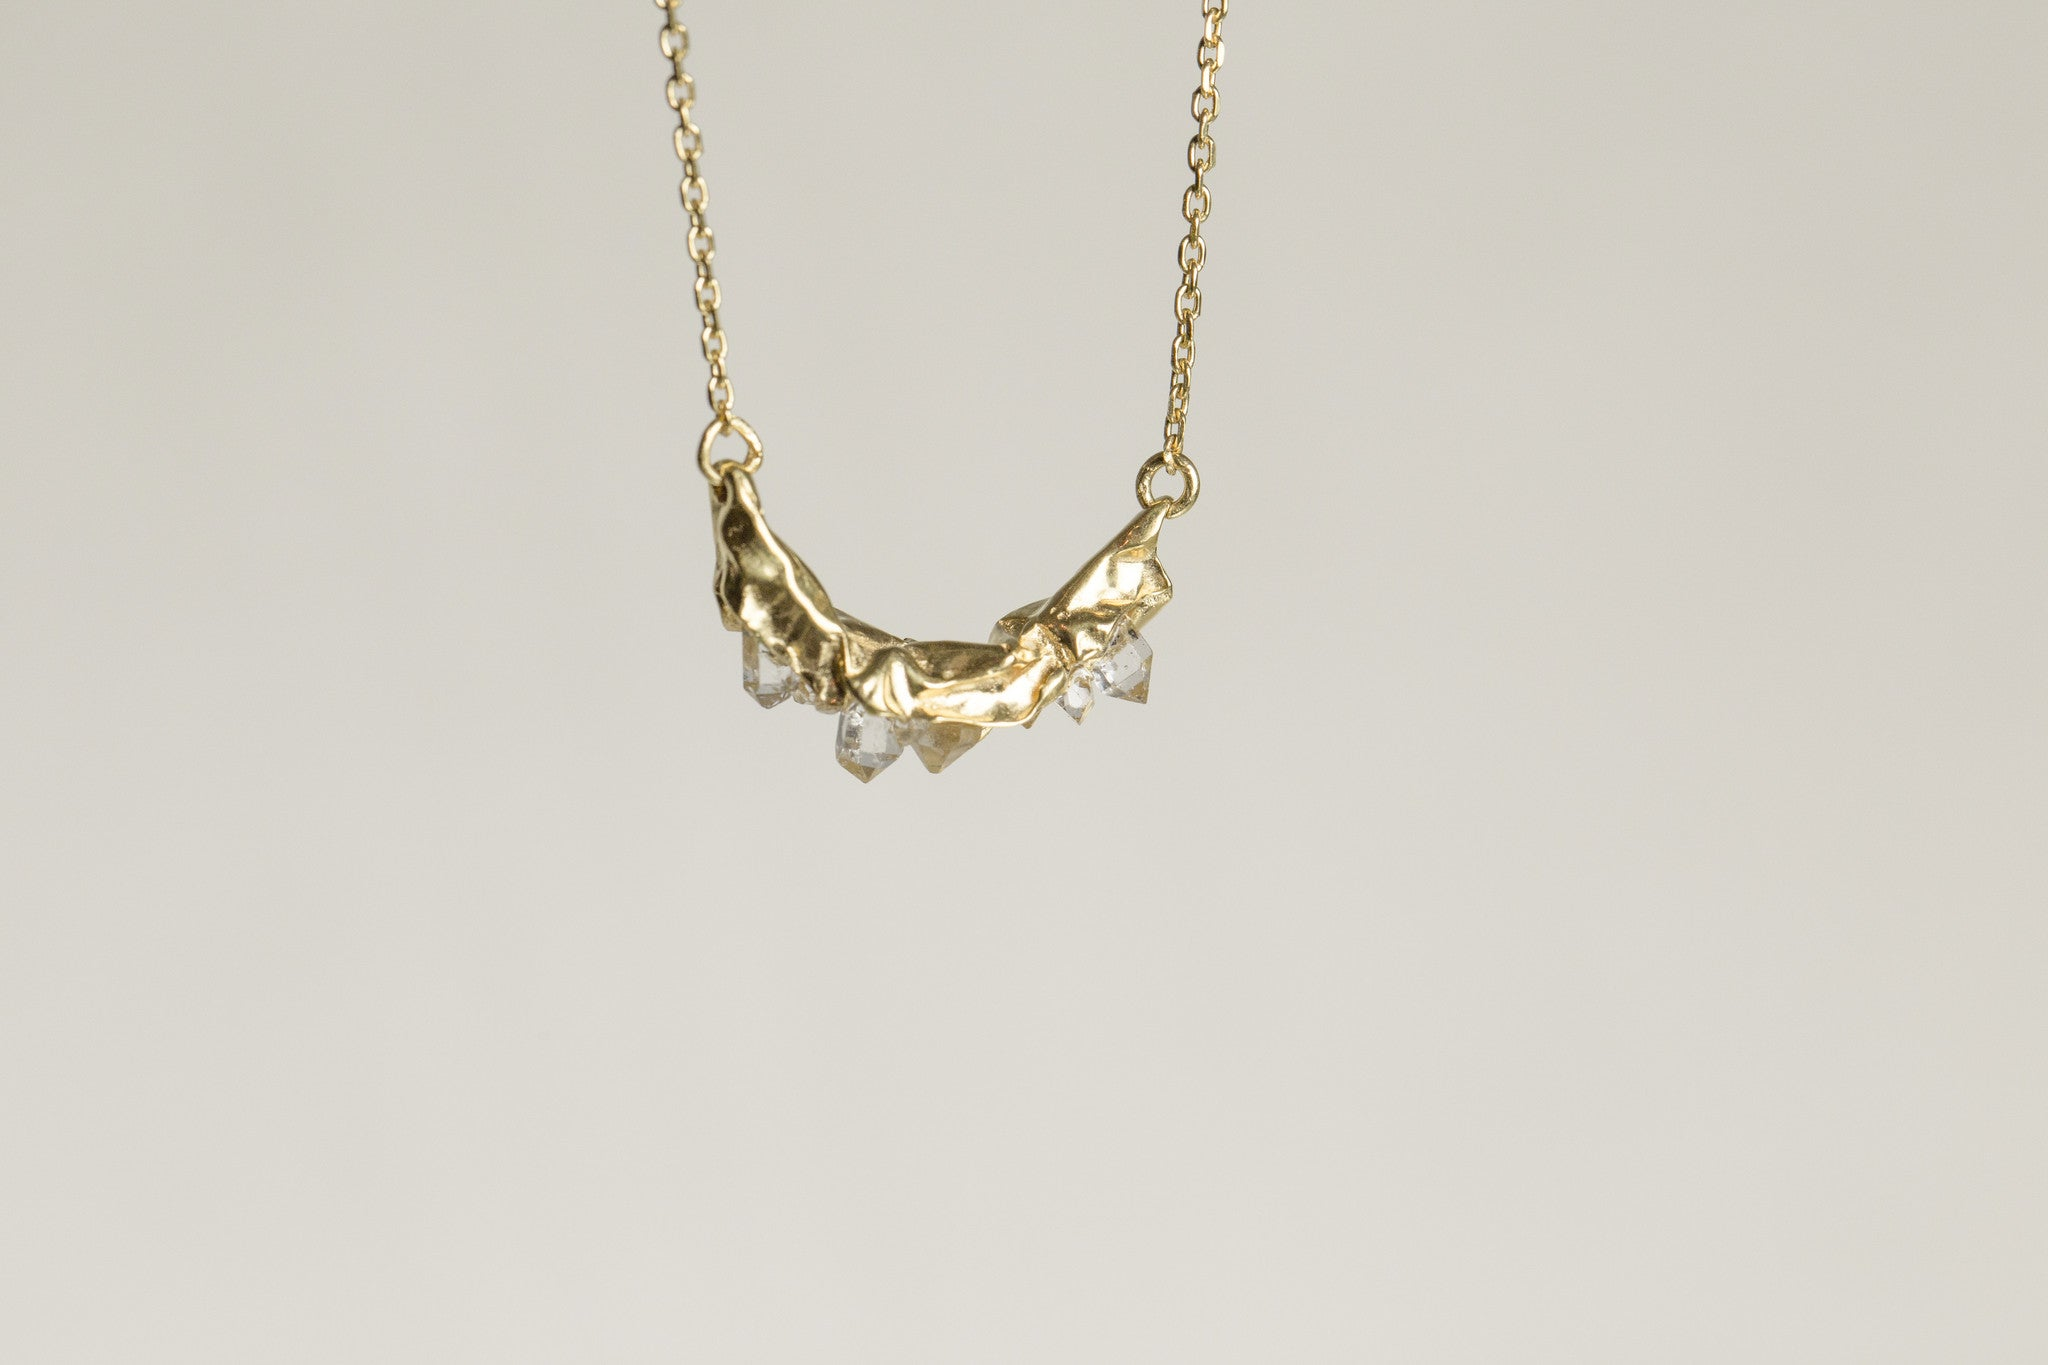 incredible organic necklace by the fascinating Niza Huang